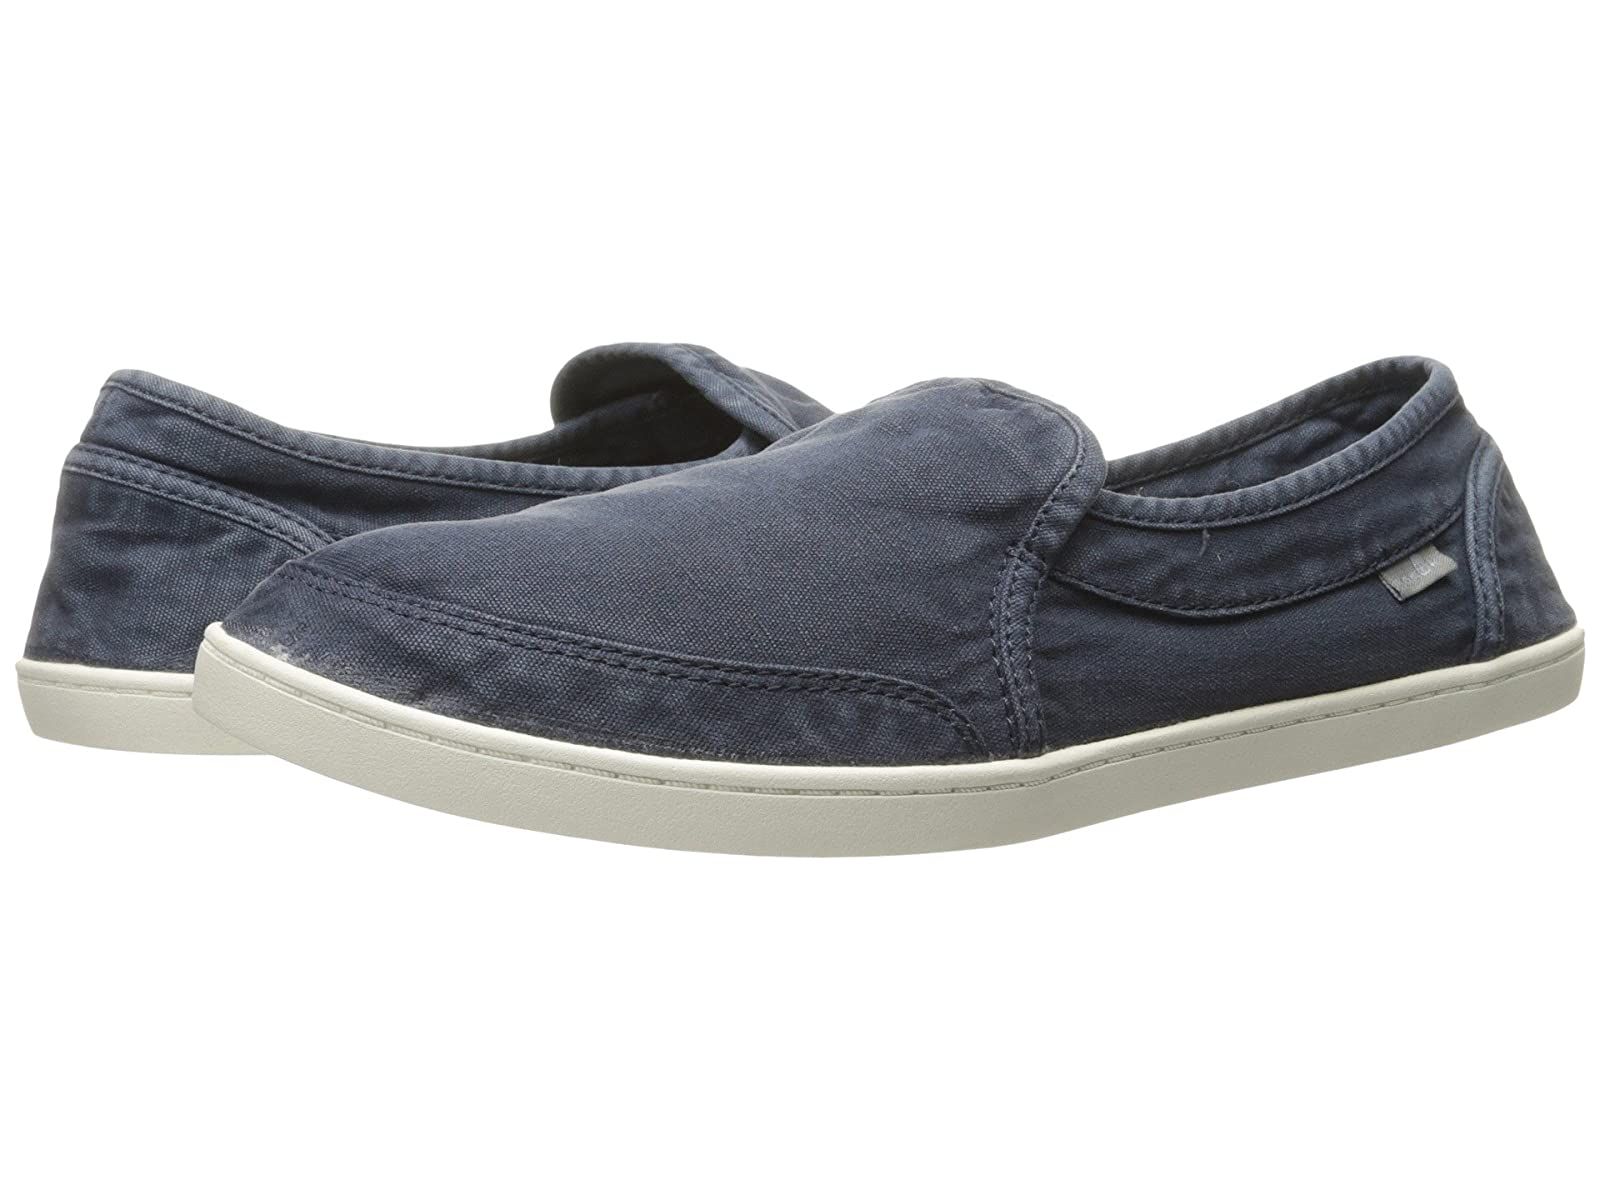 Sanuk Pair O DiceAtmospheric grades have affordable shoes